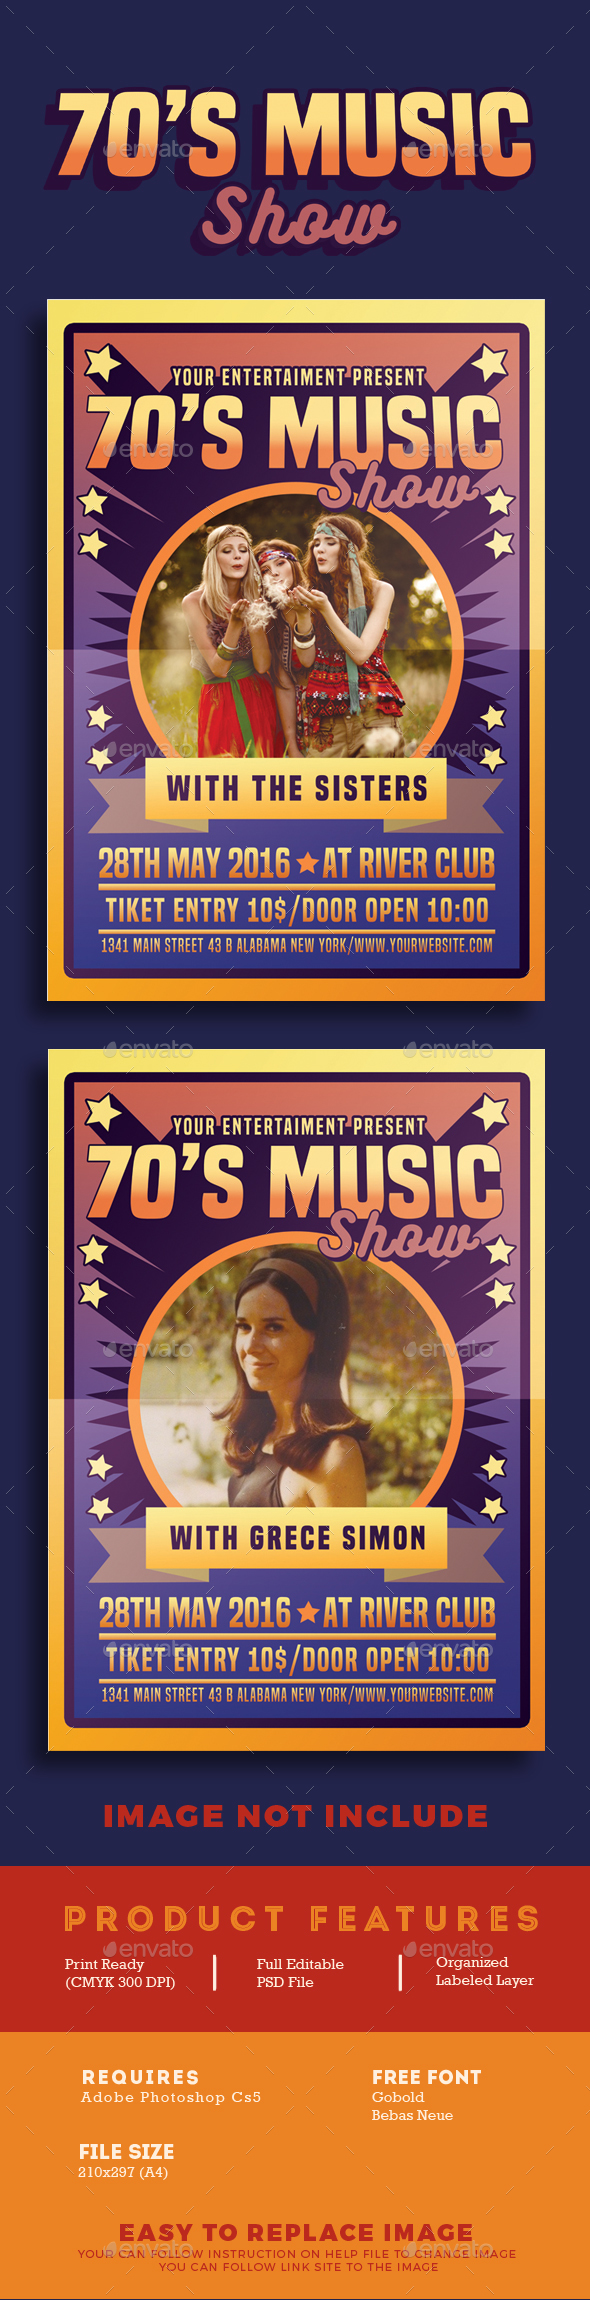 70's Music Show Poster Flyer - Flyers Print Templates